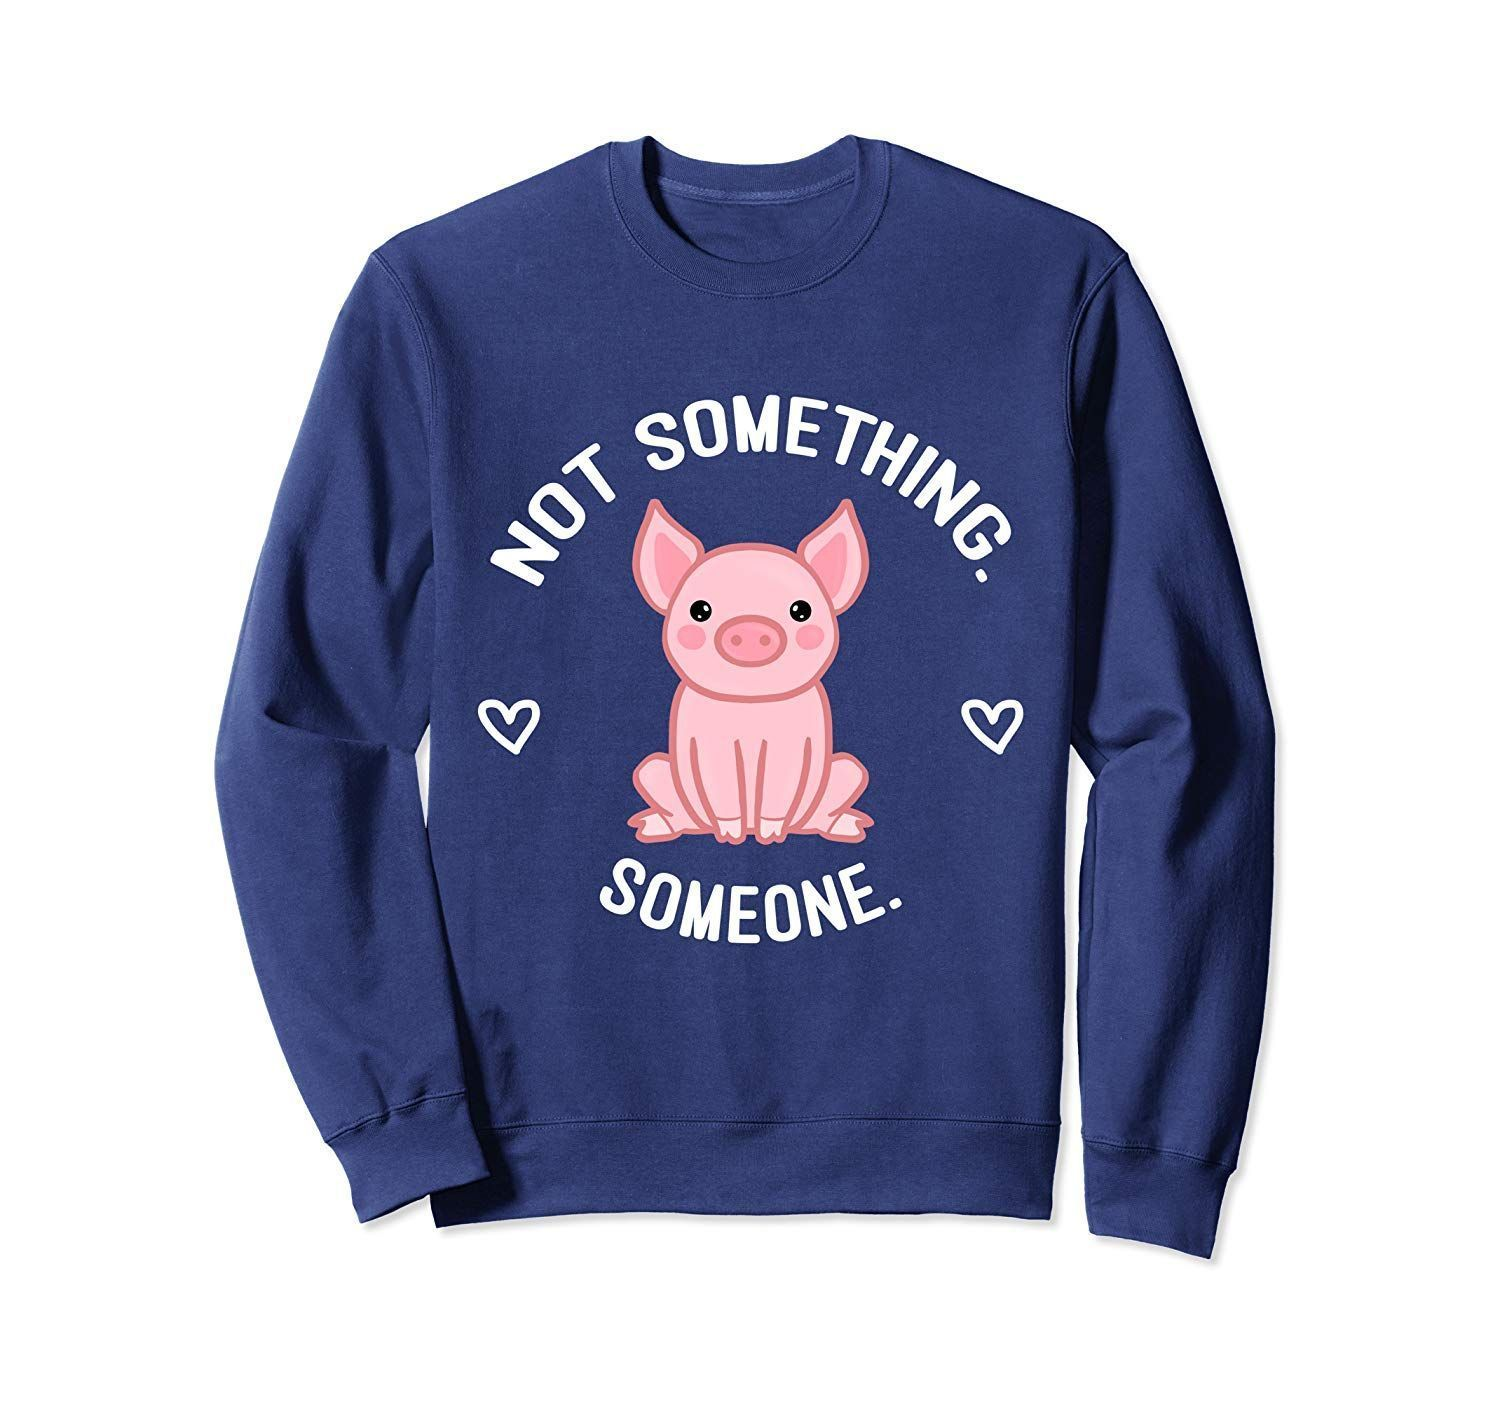 Antispecism Sweatshirt Cute Pink Pig -Vegan/Vegetarian Quote #vegetarianquotes Antispecism Sweatshirt Cute Pink Pig -Vegan/Vegetarian Quote #vegetarianquotes Antispecism Sweatshirt Cute Pink Pig -Vegan/Vegetarian Quote #vegetarianquotes Antispecism Sweatshirt Cute Pink Pig -Vegan/Vegetarian Quote #vegetarianquotes